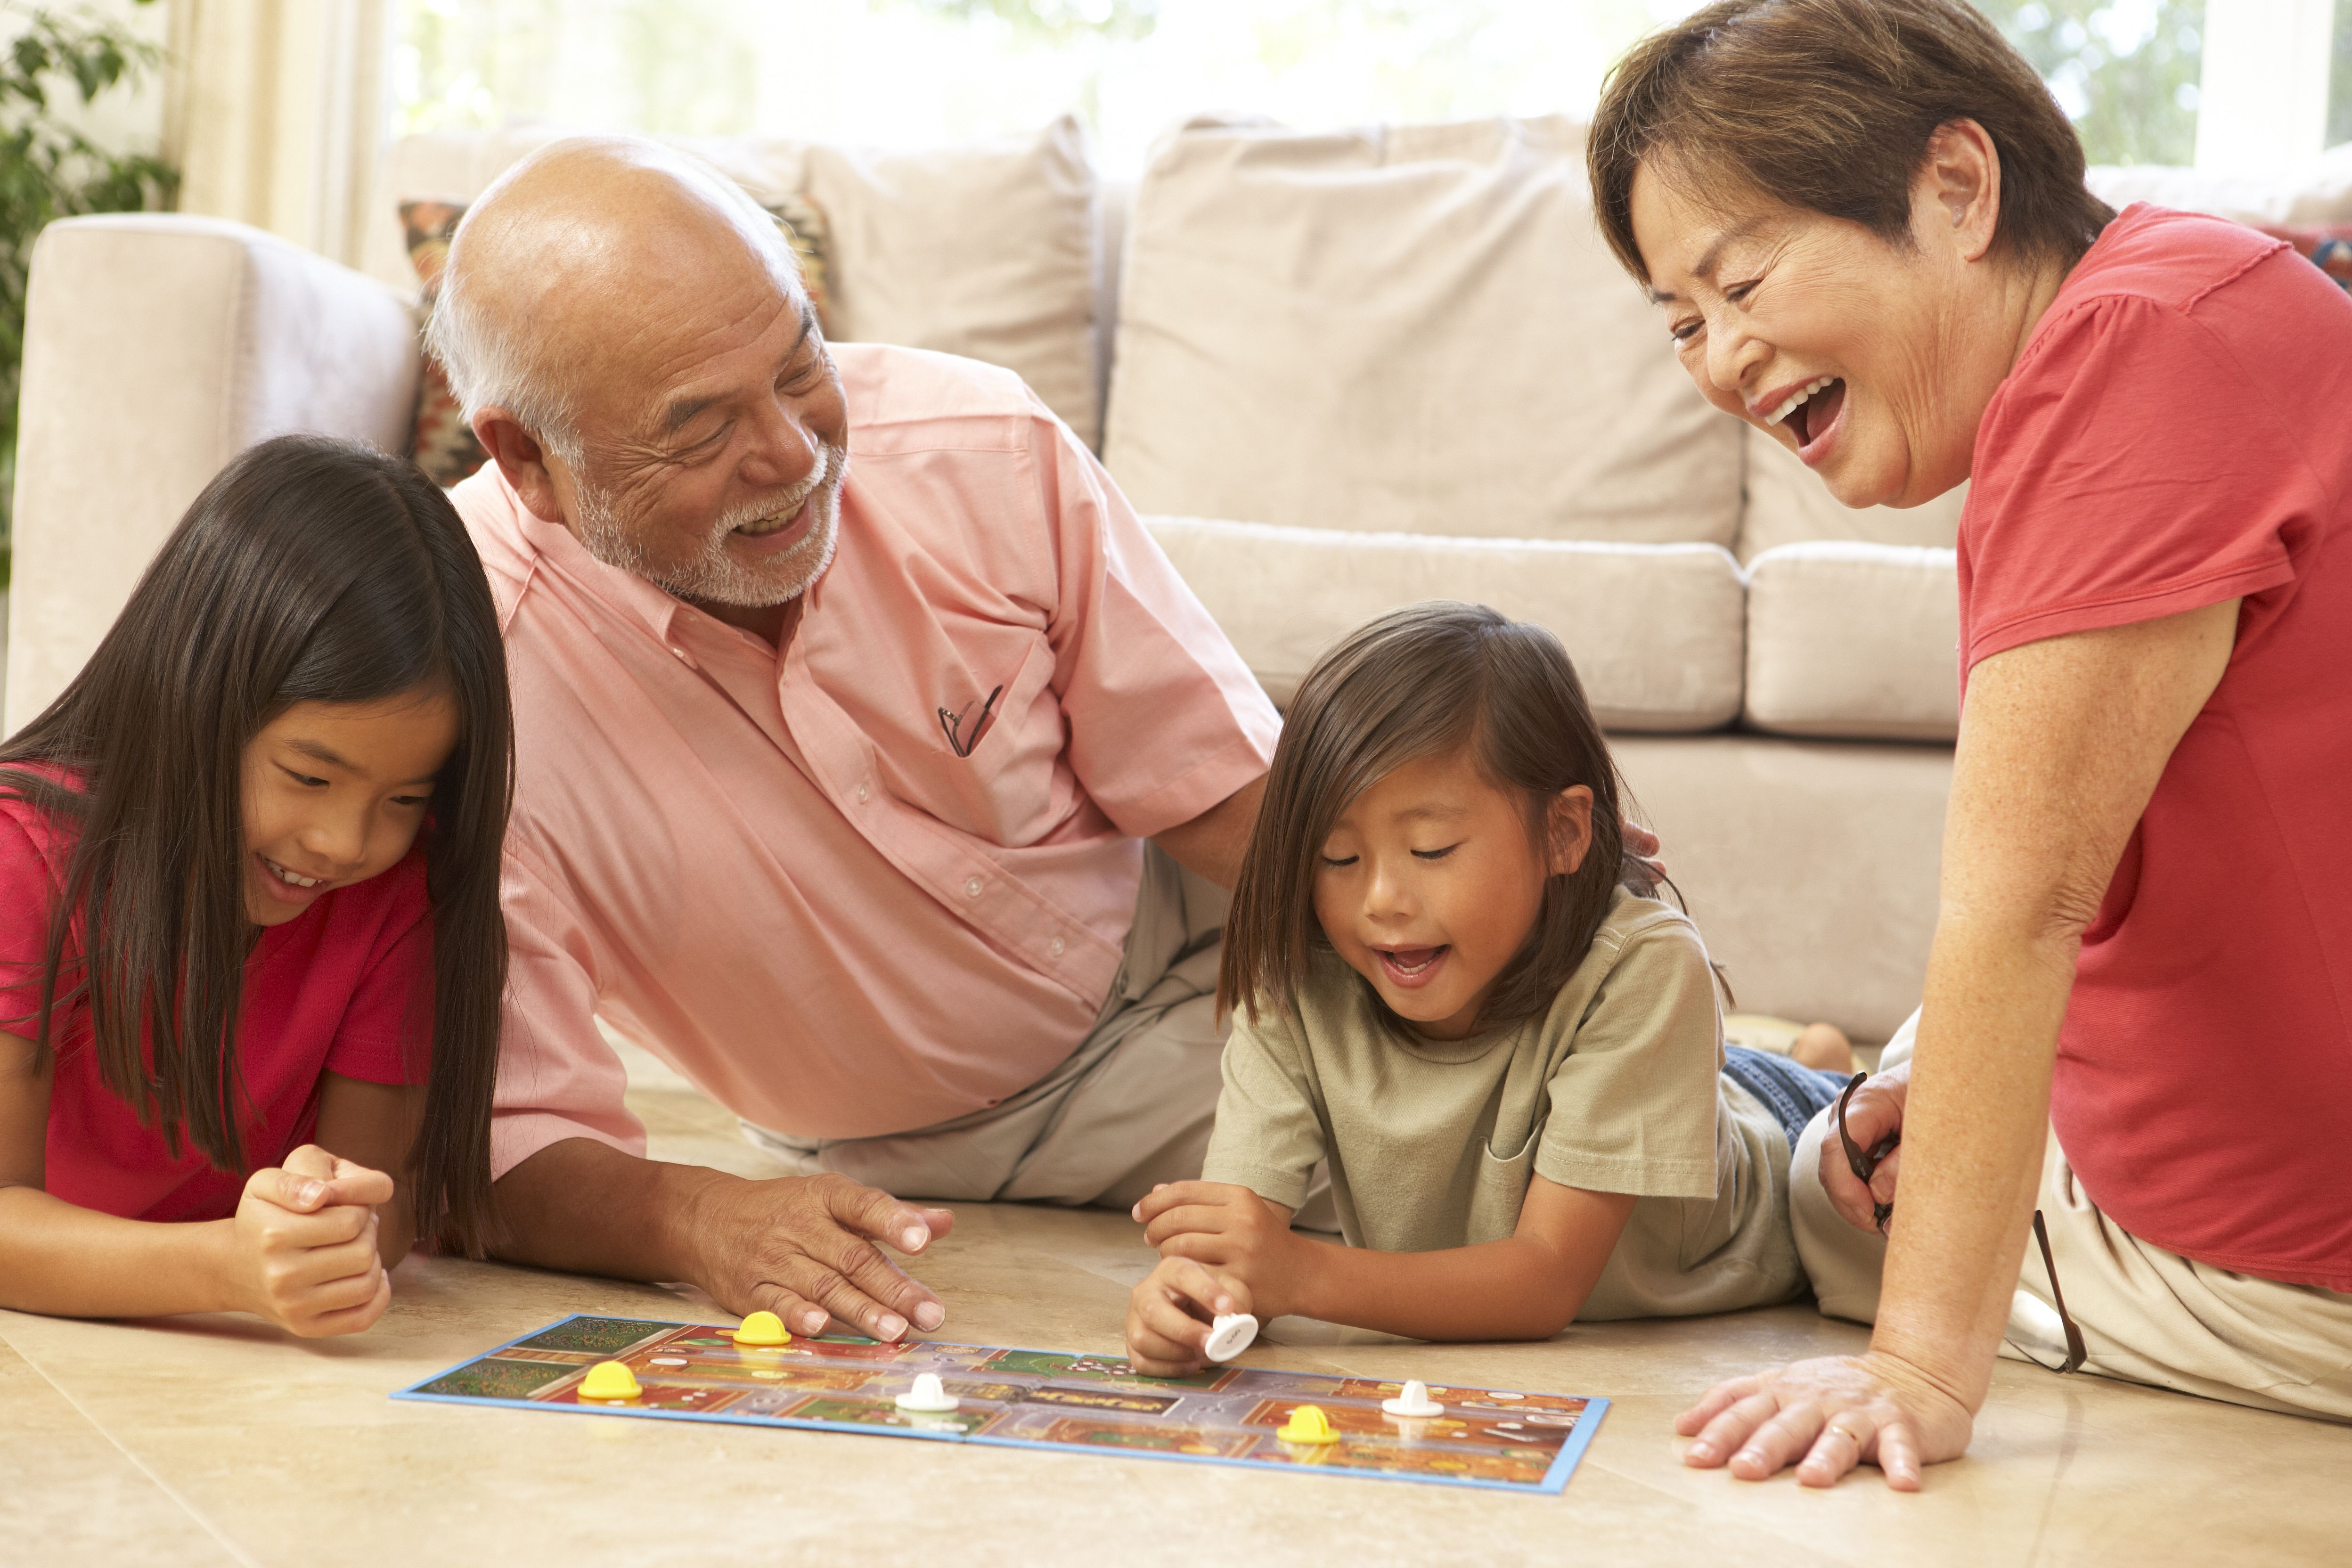 Study: Close grandparent-grandchild relationships have